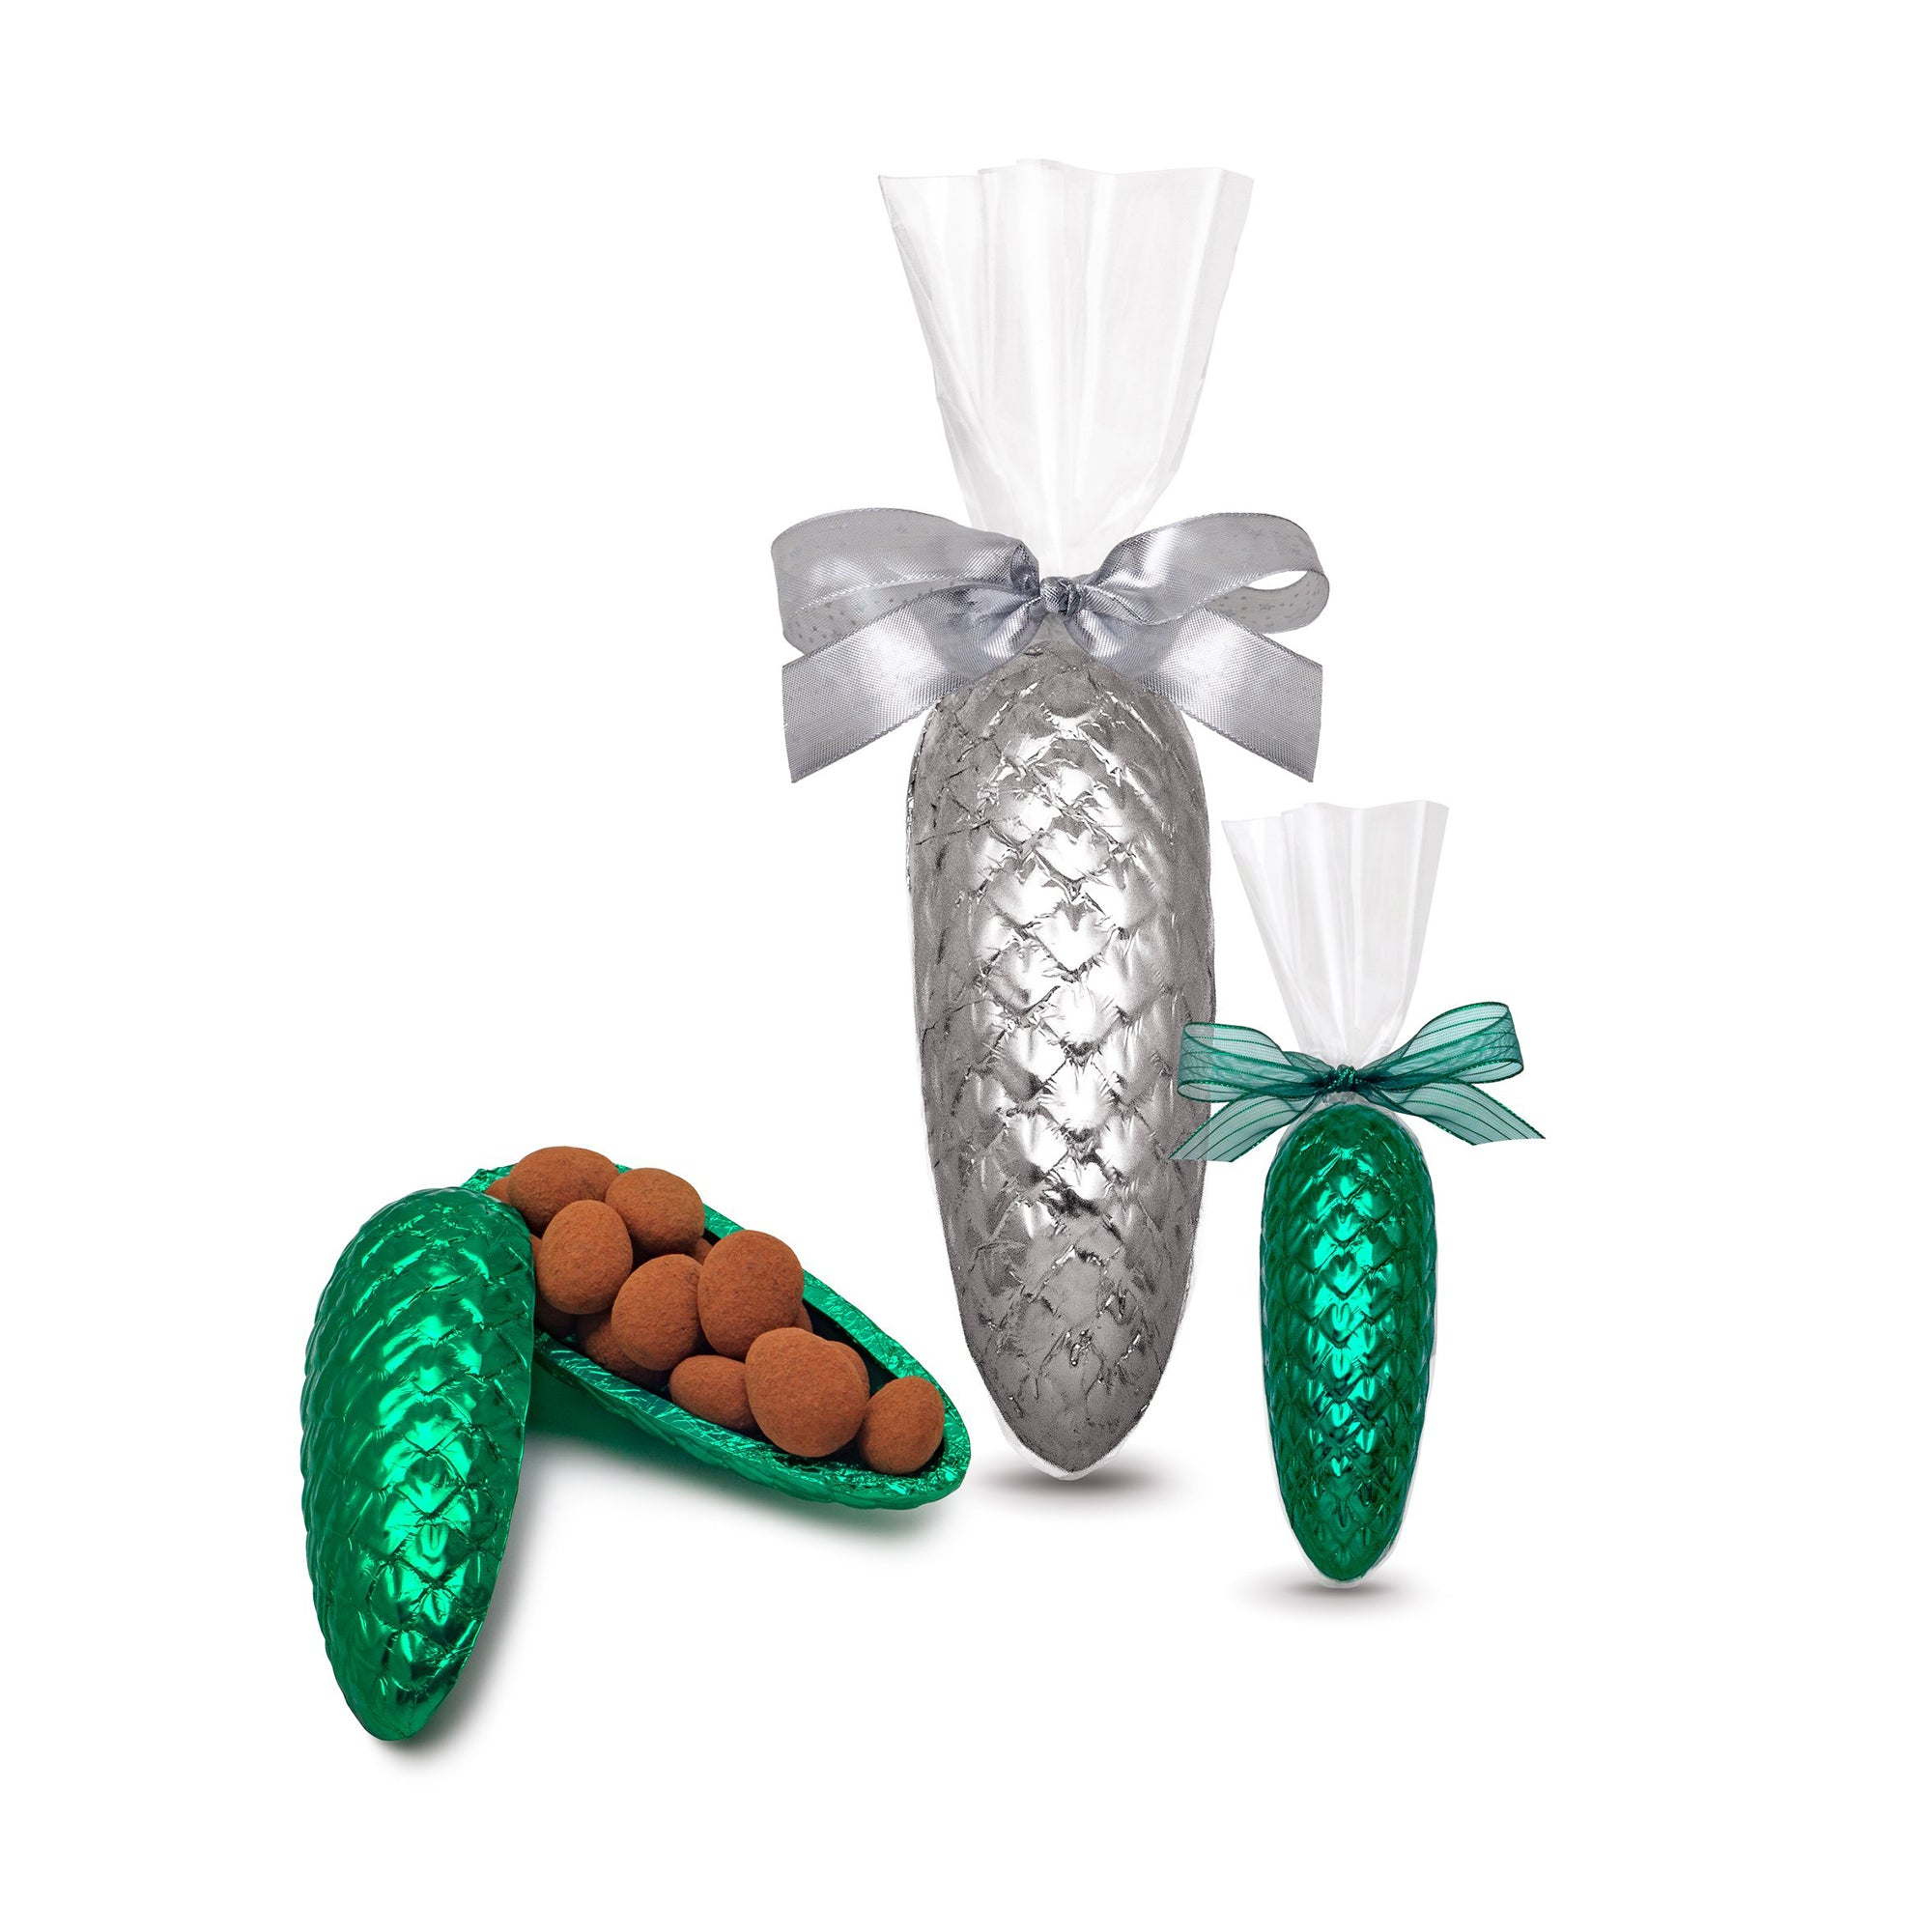 Holiday Pinecone filled with Chocolate Almonds